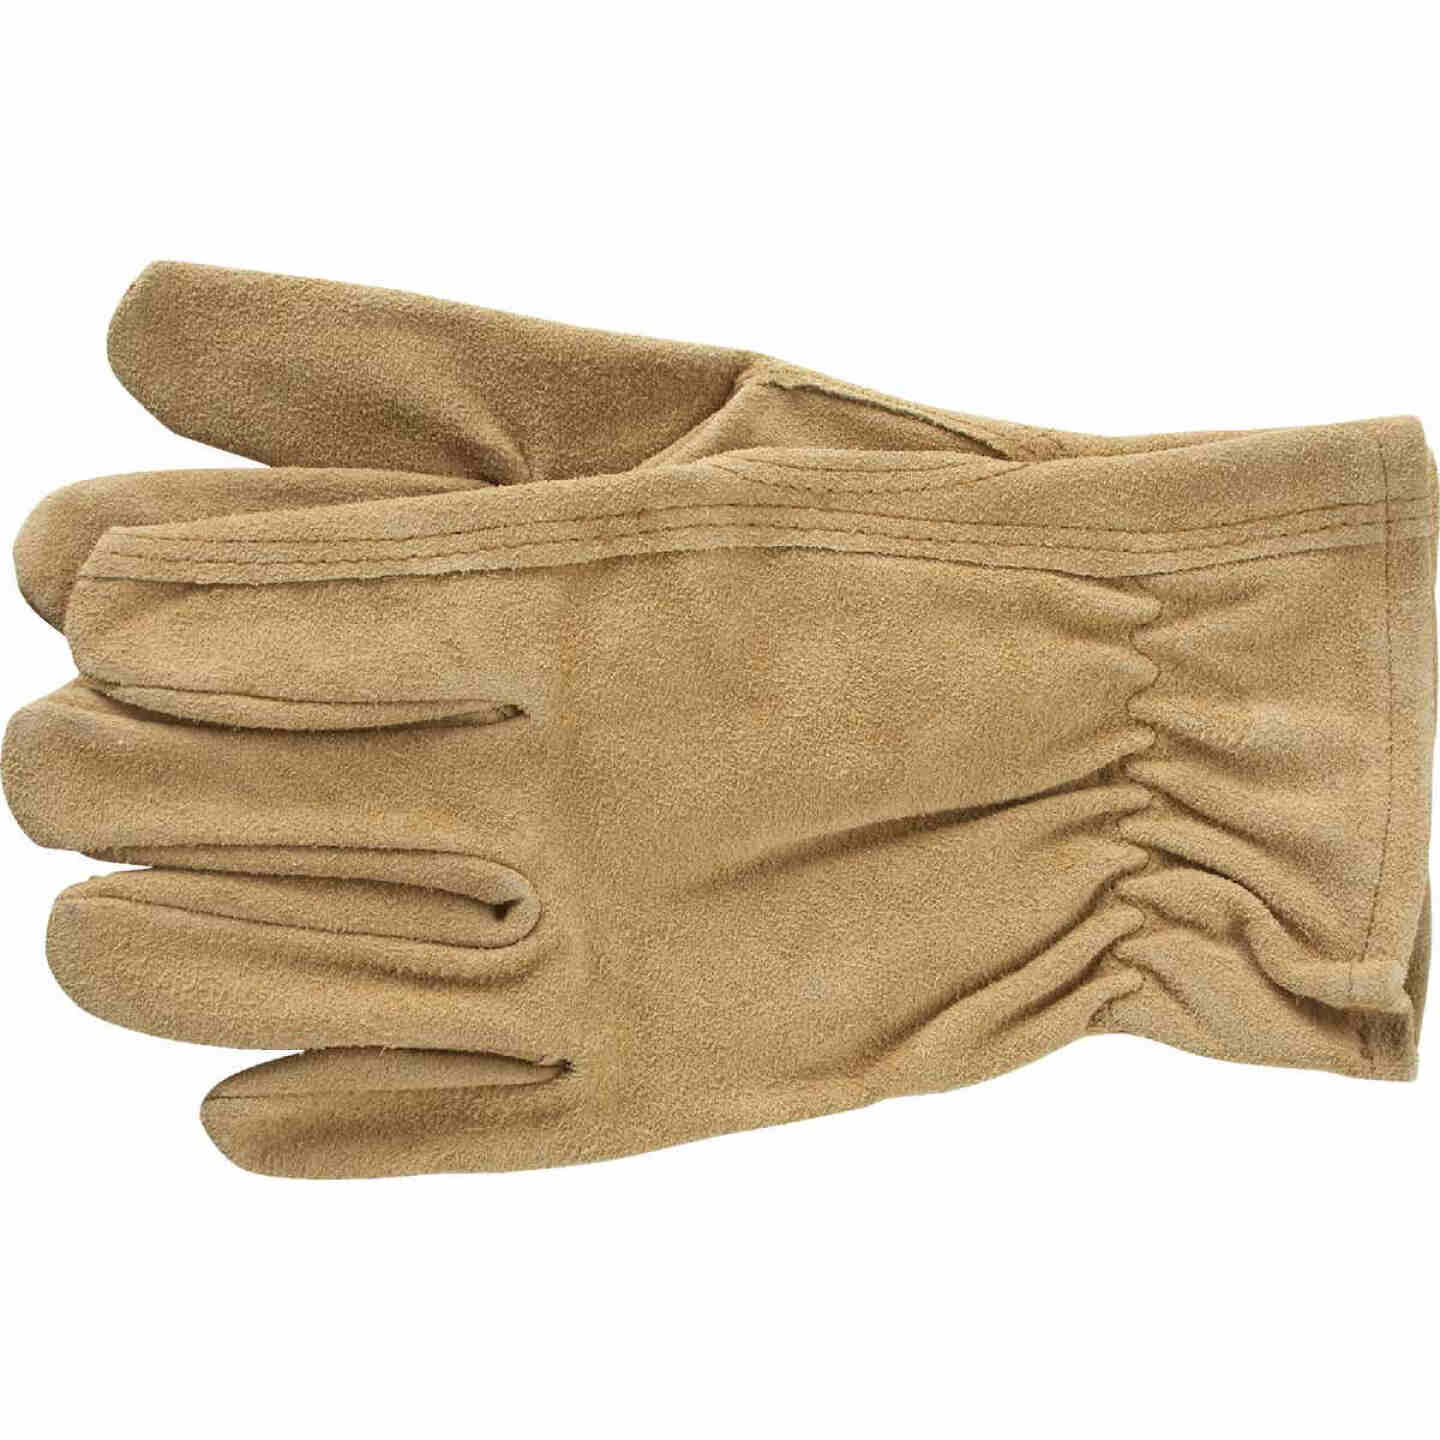 Do it Best Men's XL Suede Leather Work Glove Image 1